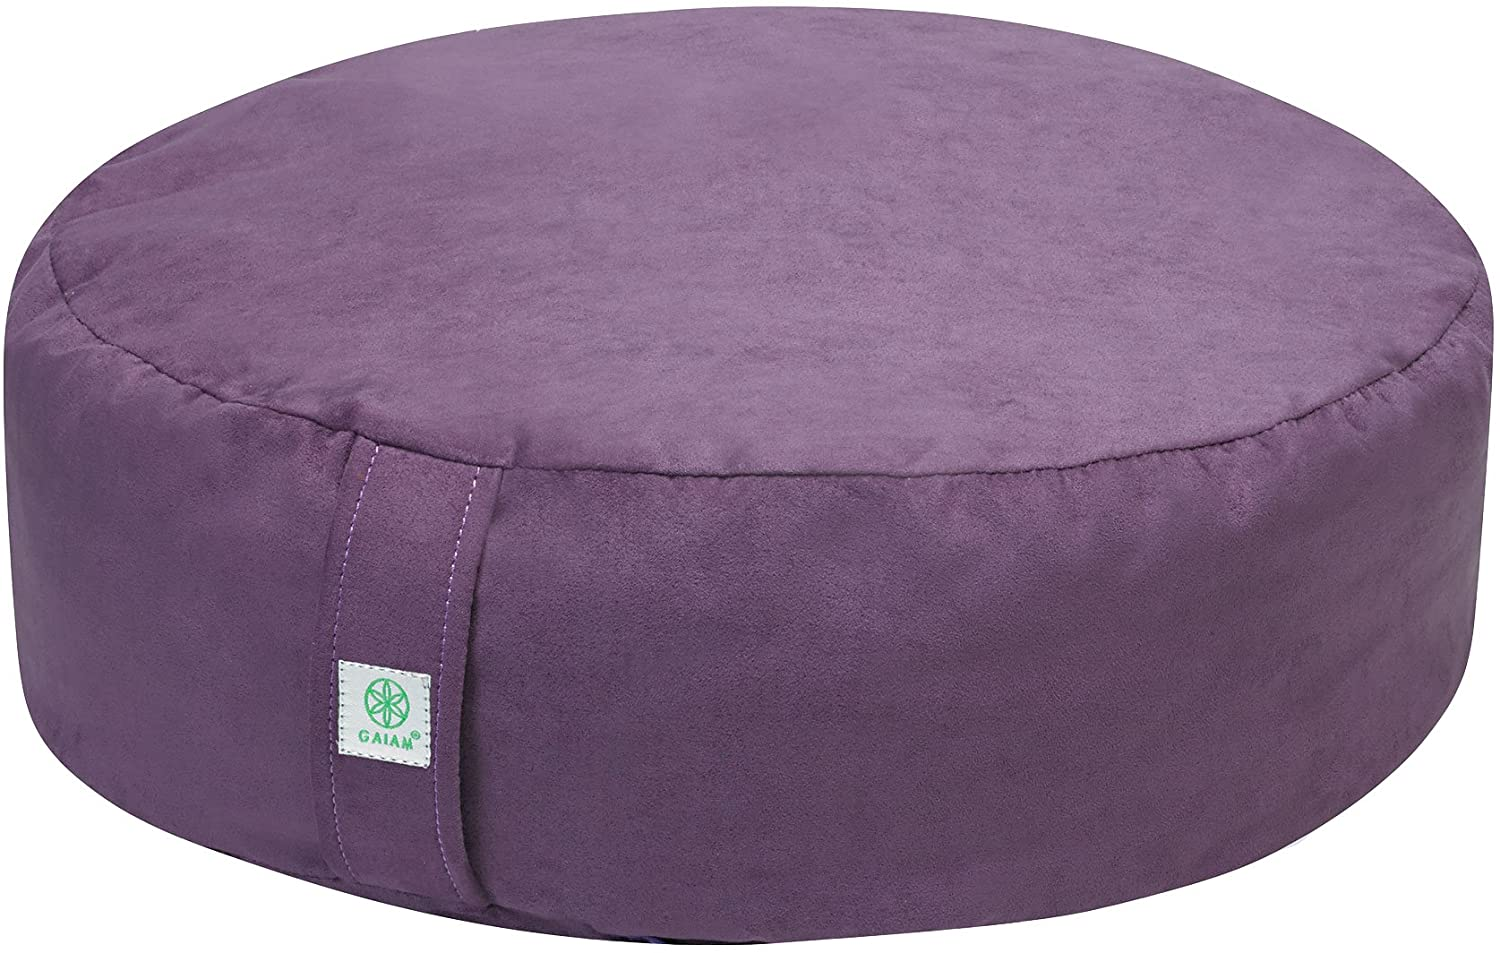 Gaiam Pillow